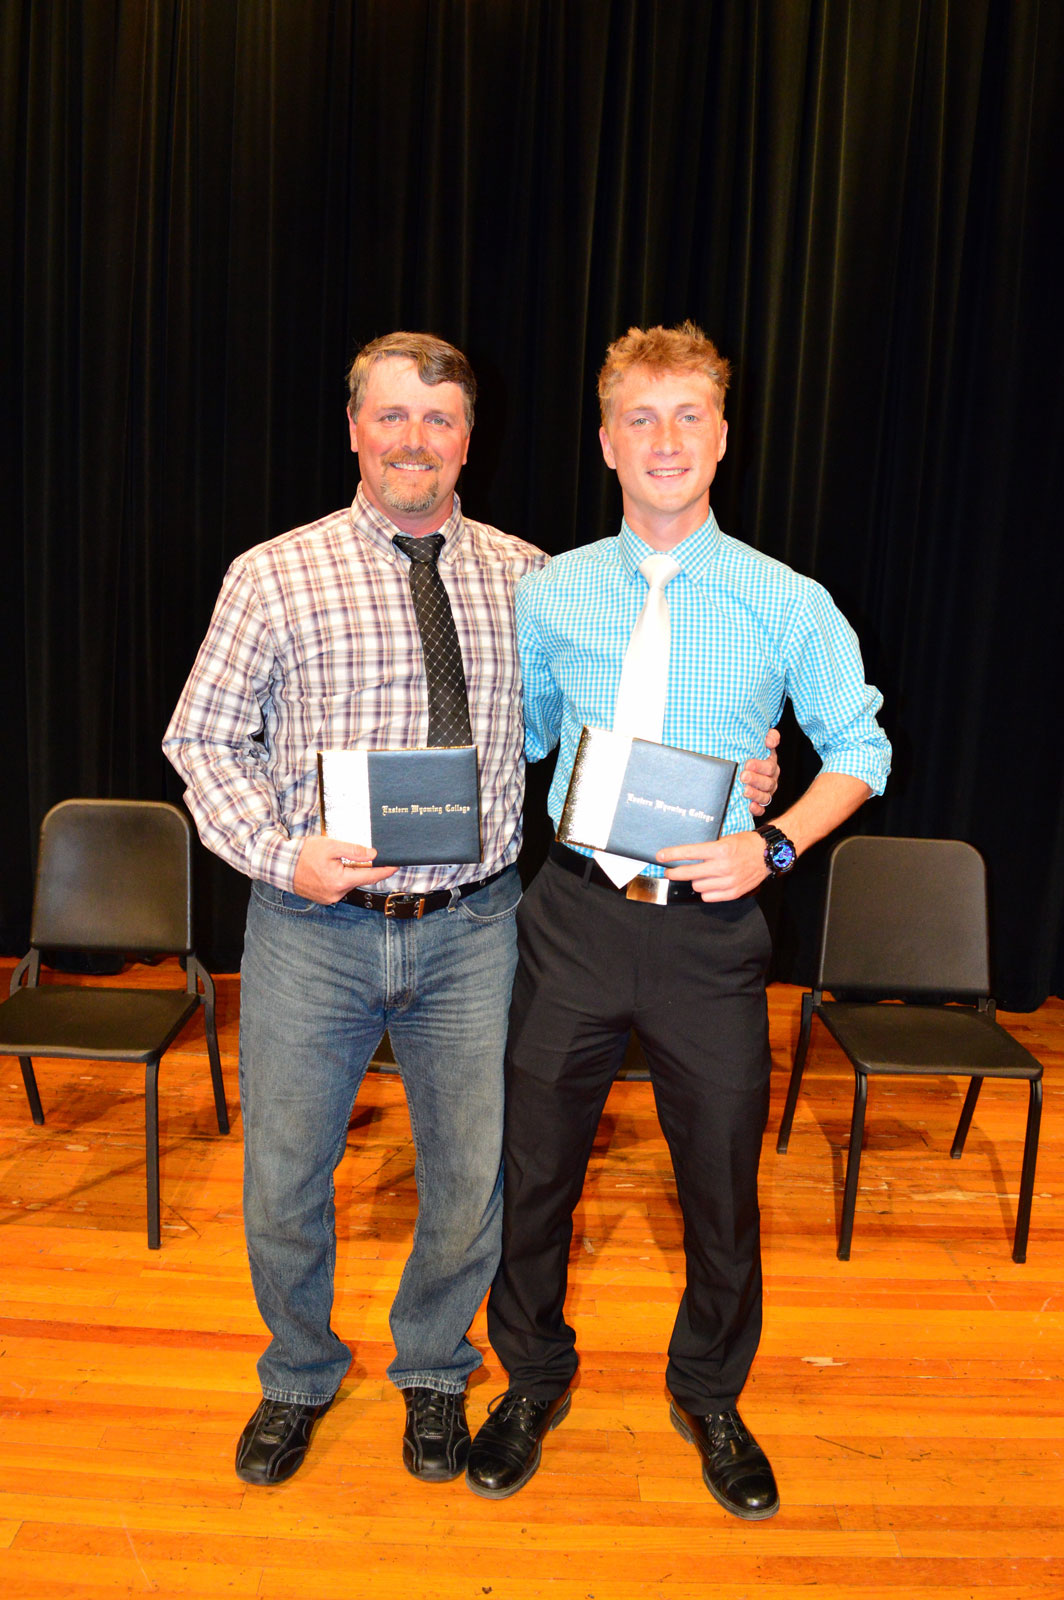 James – Marshall: James and Marshall Rhoades, father and son, receive their Associate degrees together.